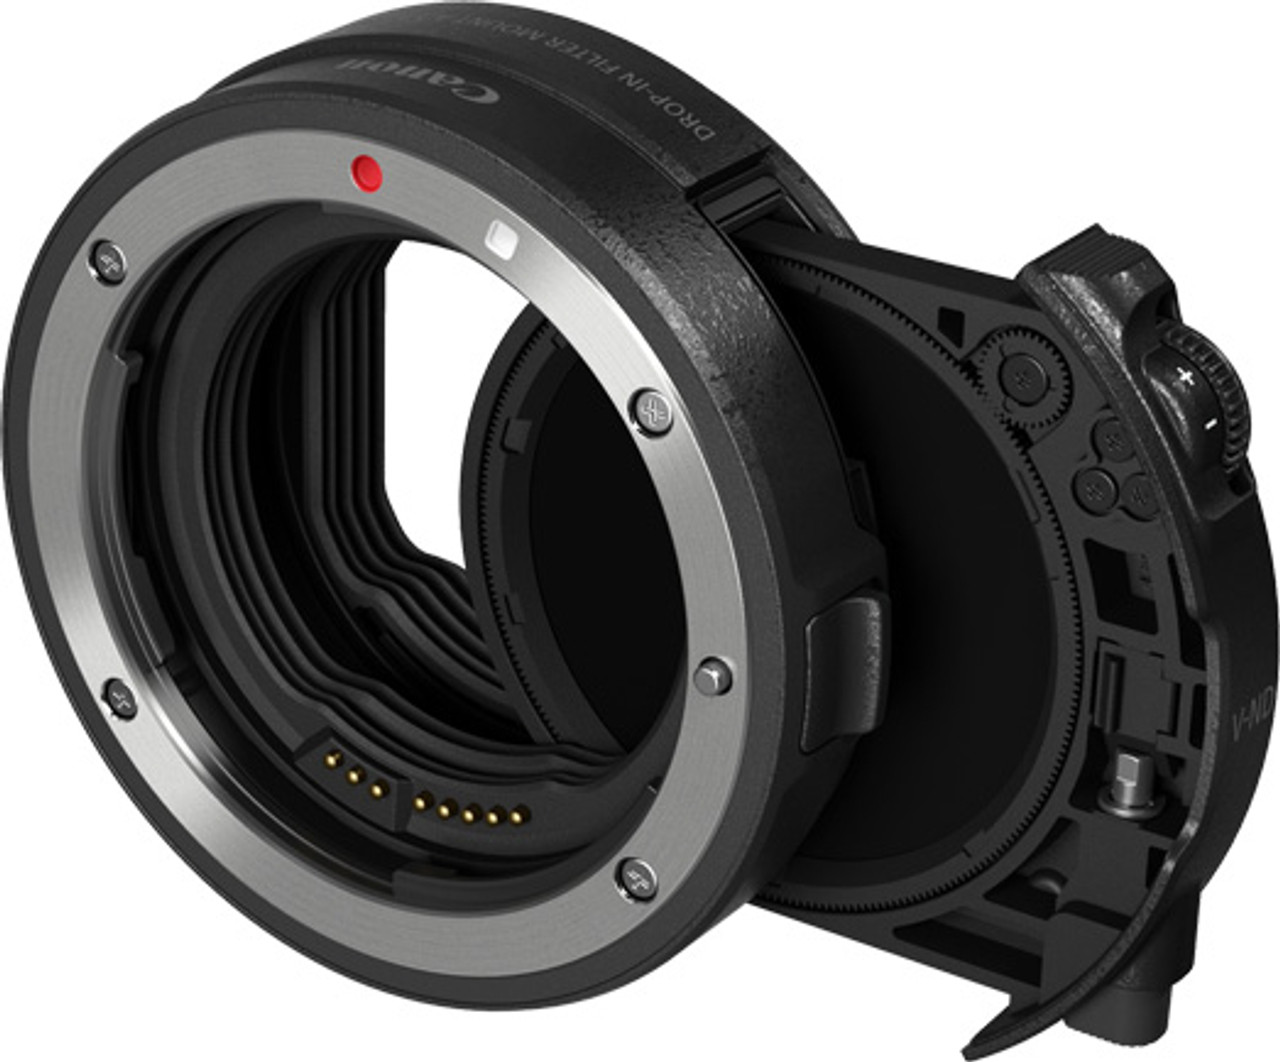 Canon Drop-in Filter Mount Adapter EF-EOS R with Drop-in Variable ND Filter